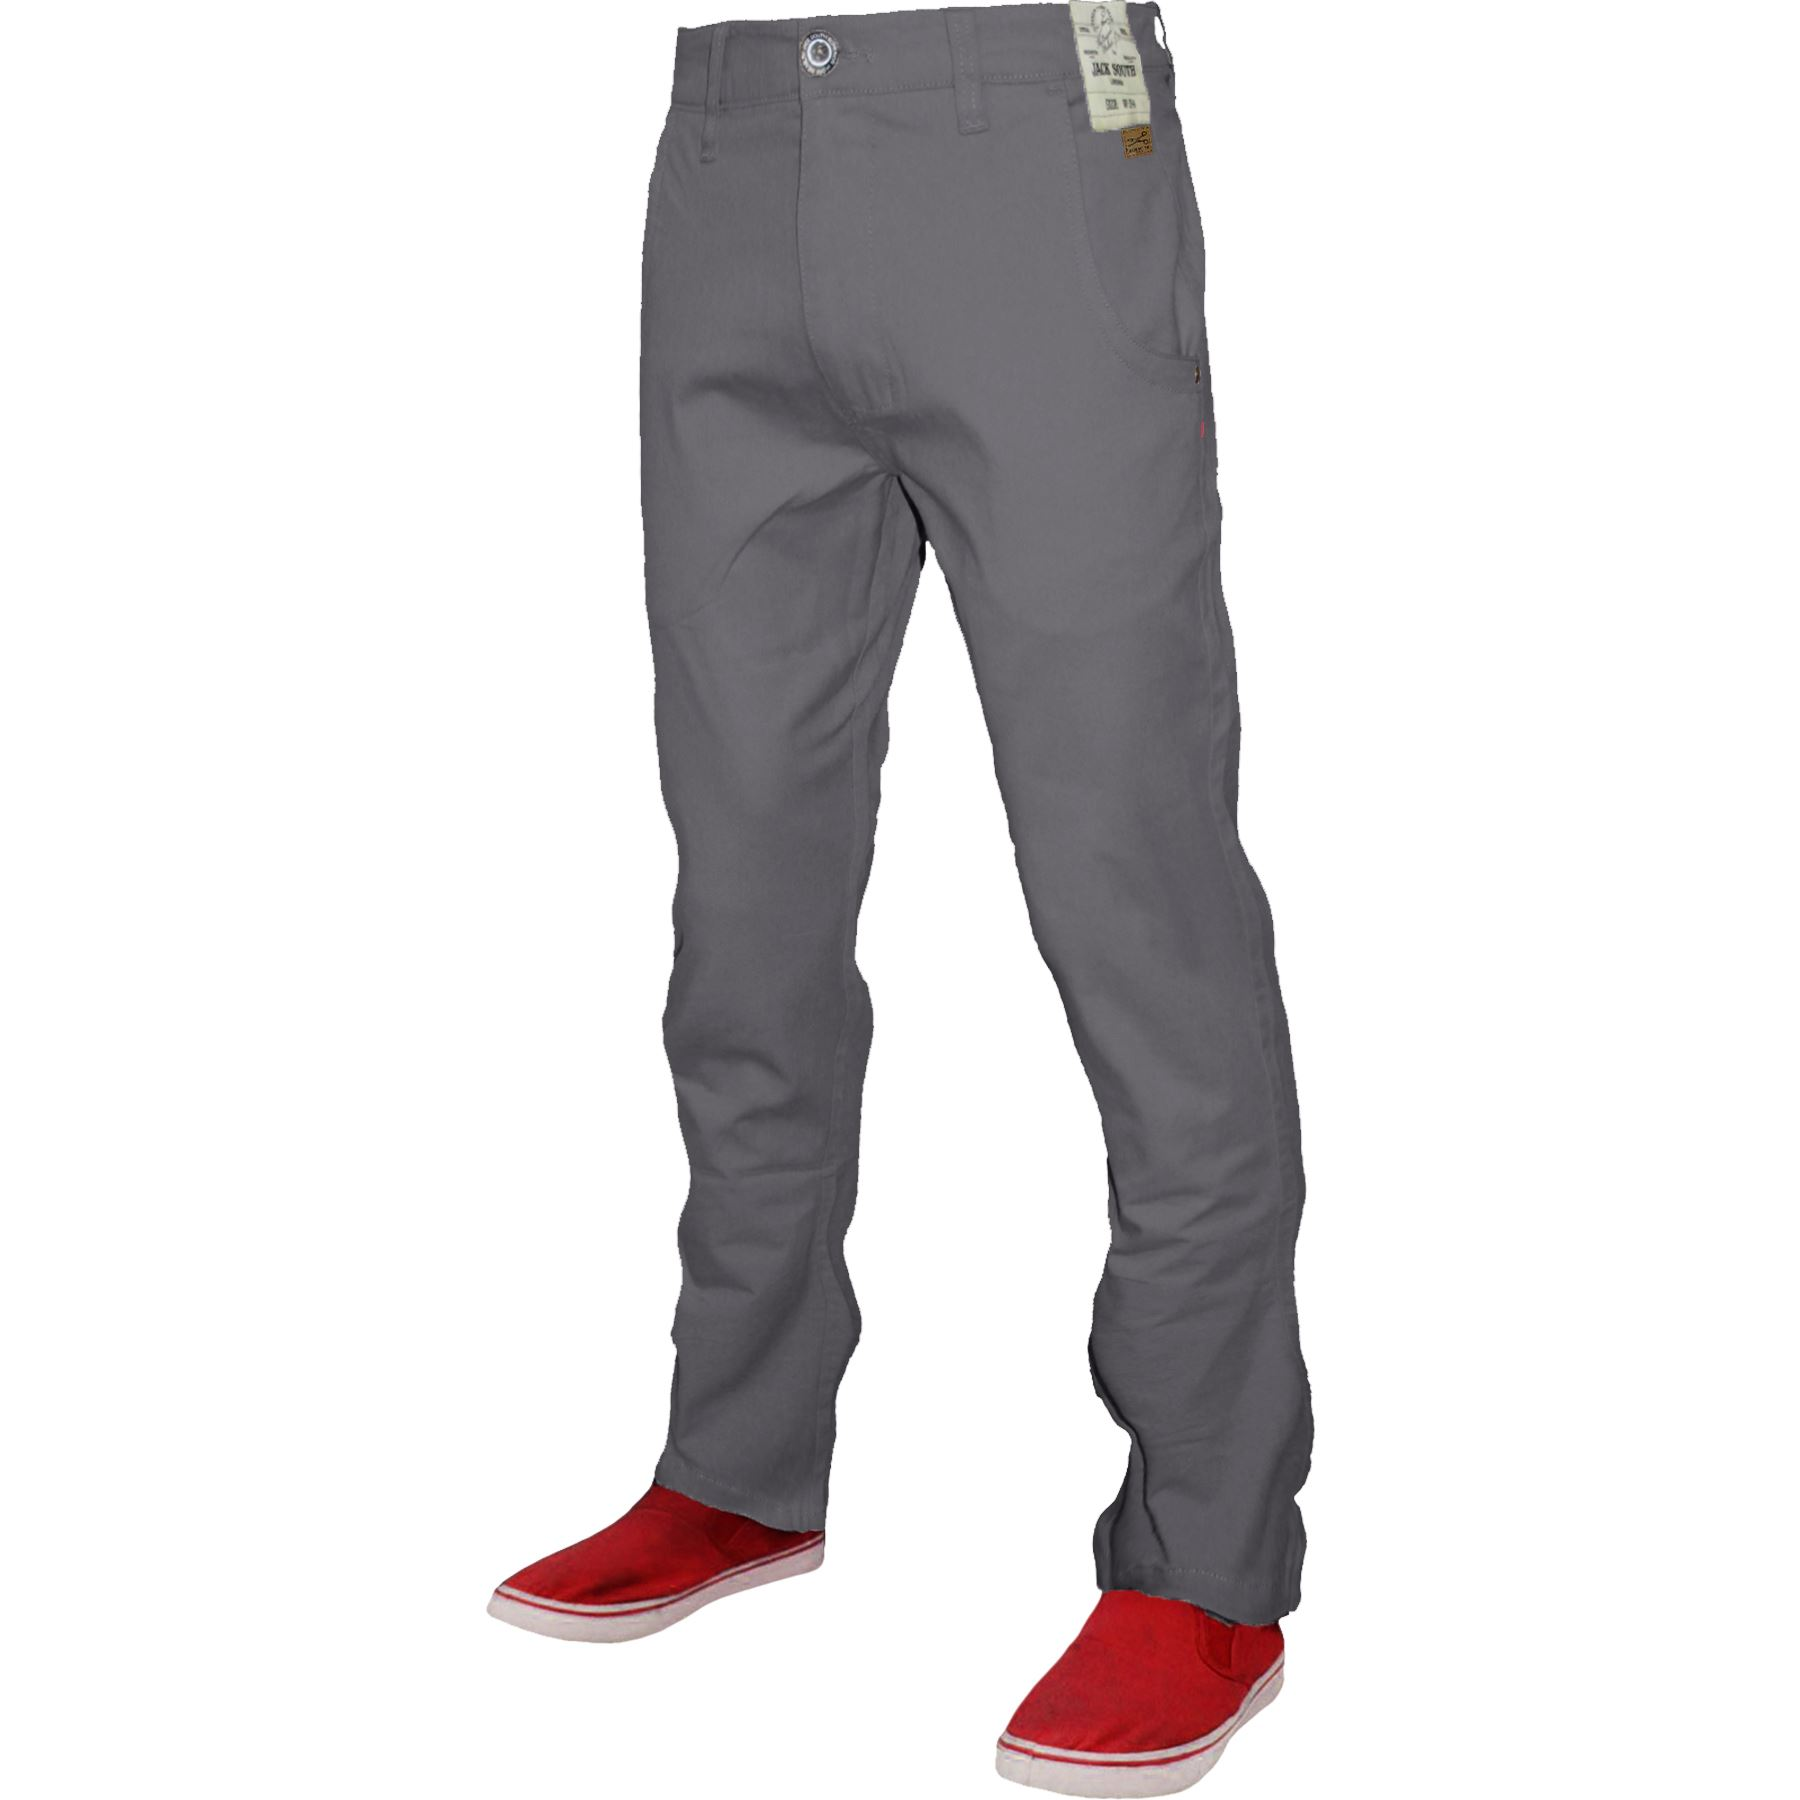 Mens-Chino-Classic-Regular-Fit-Trouser-Casual-Stretch-Spandex-Pants-Size-32-40 thumbnail 9